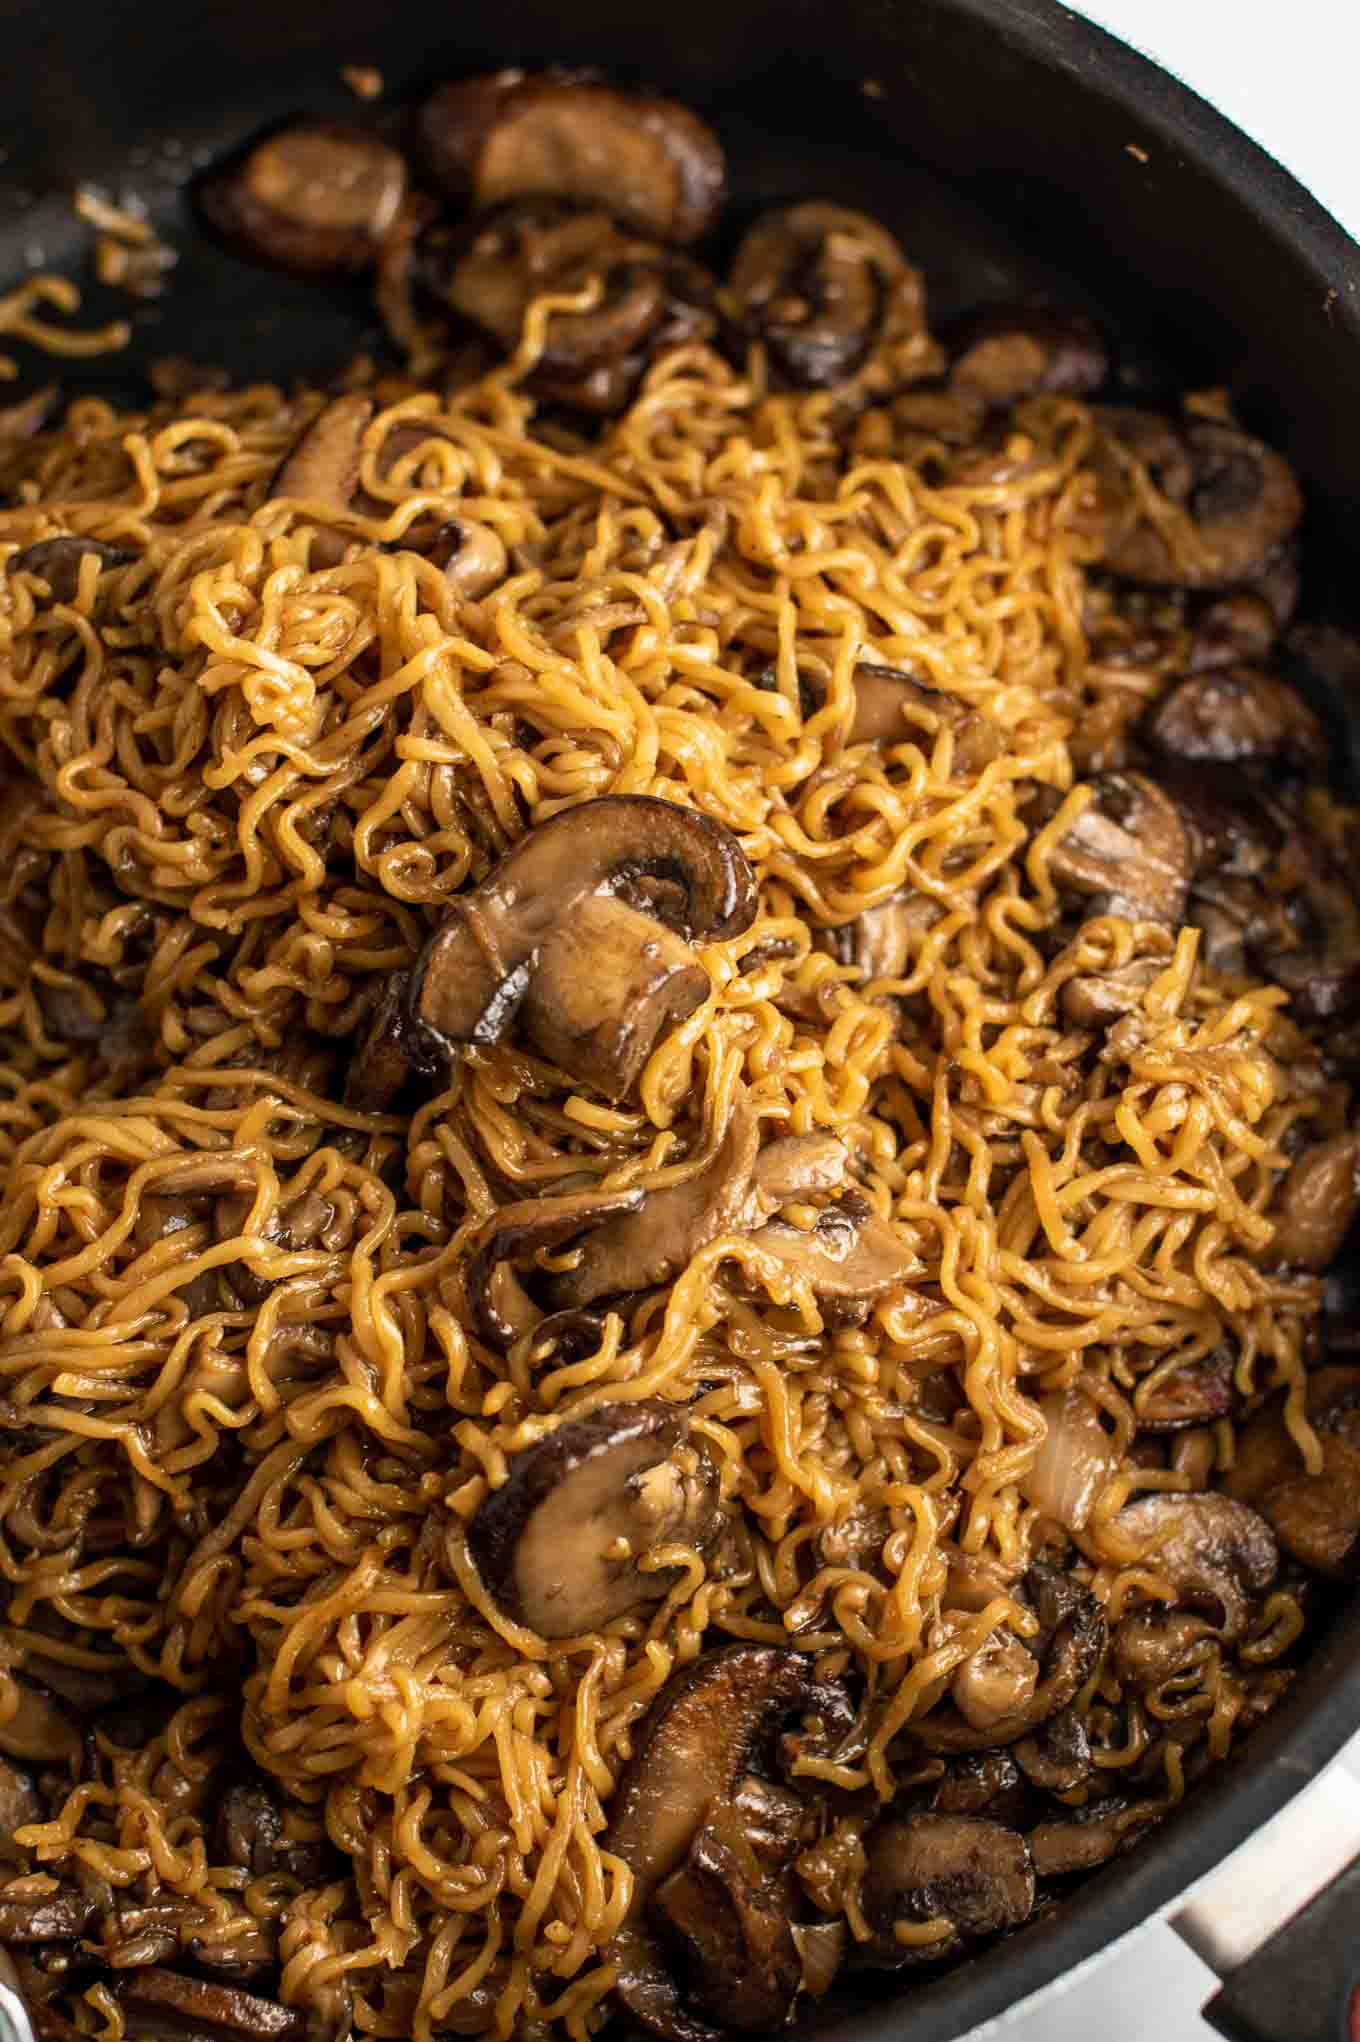 easy ramen stir fry with mushrooms from an overhead view in the pan